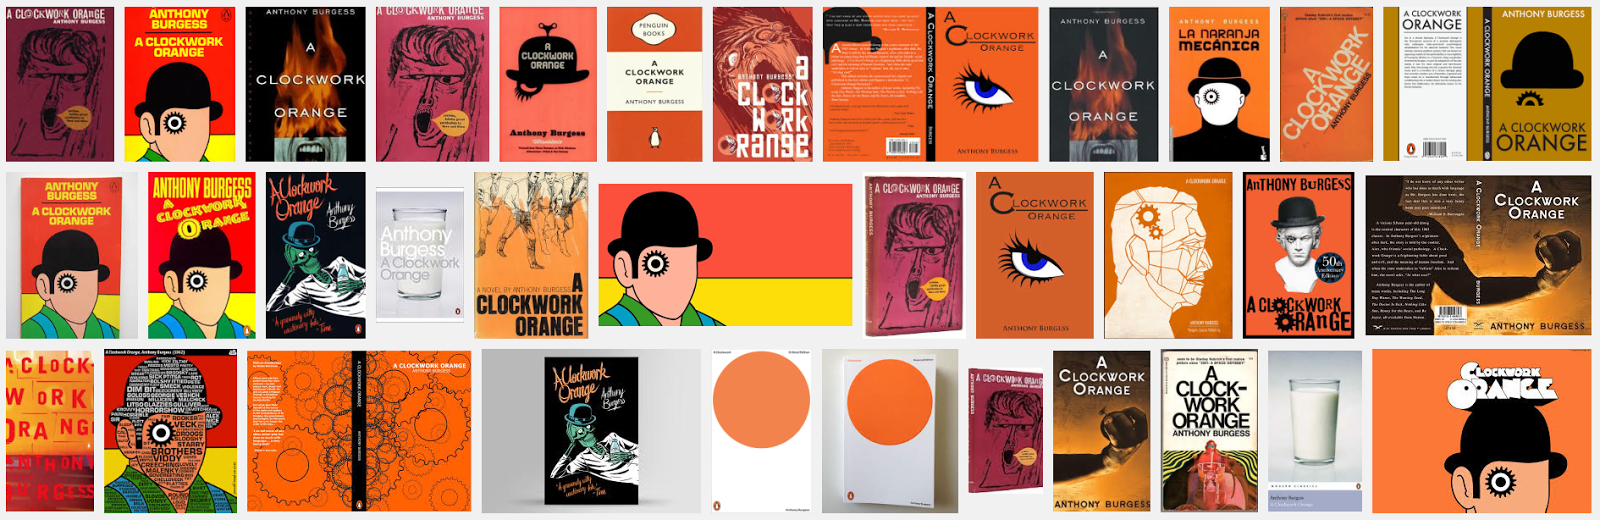 all year 3 work design practice a clockwork orange book cover a clockwork orange book cover redesign research into previous book covers